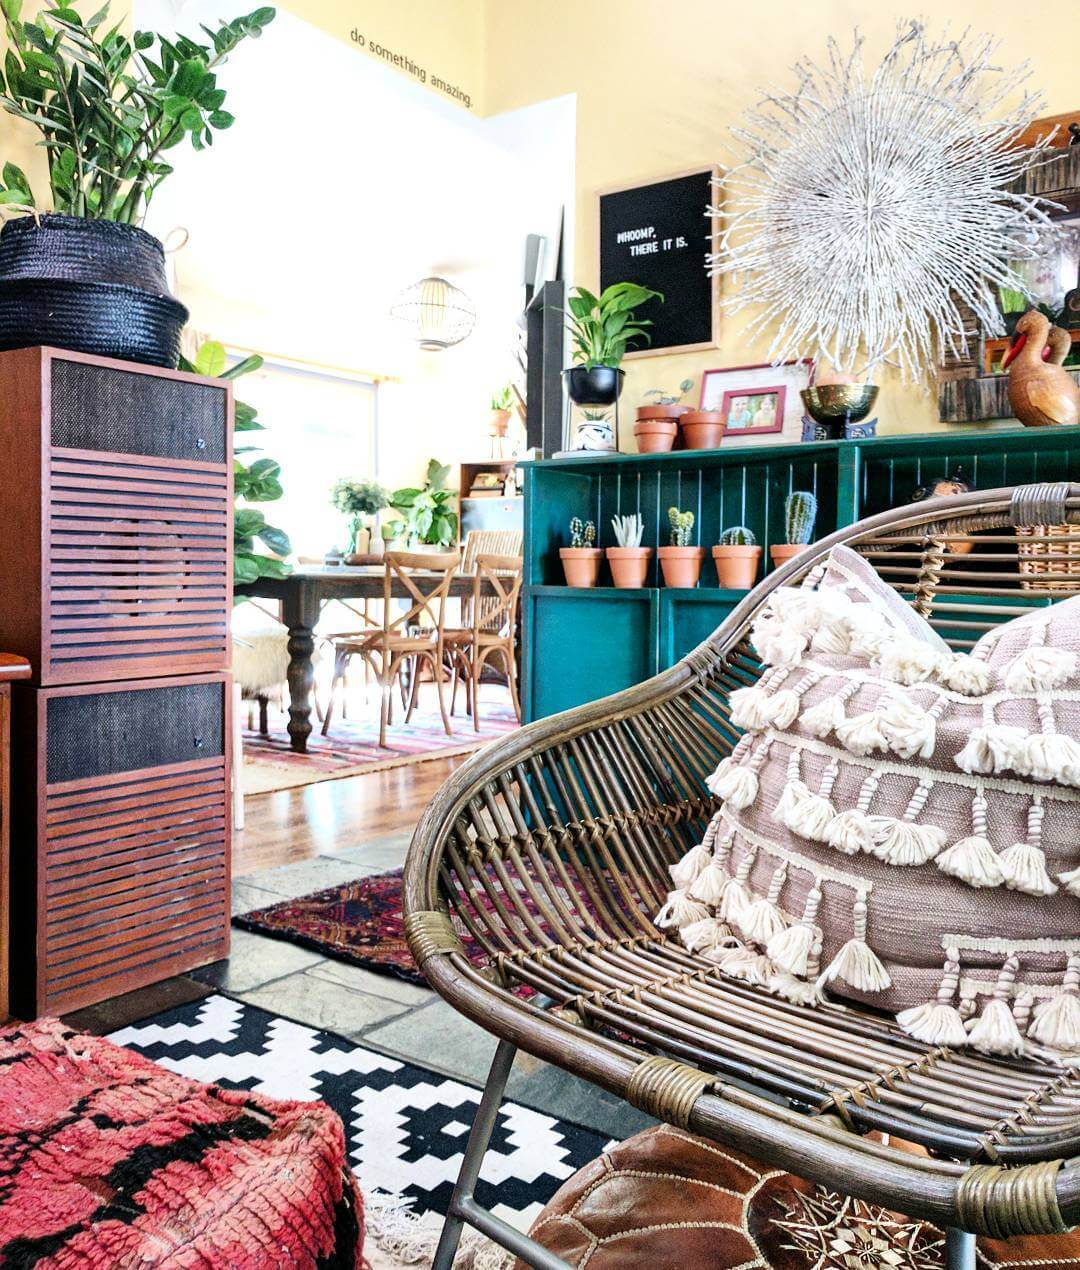 Find out what you need to create a boho look like this in your home on www.lovetohome.co.uk Photo credit: @the.hectic.eclectic via Instagram